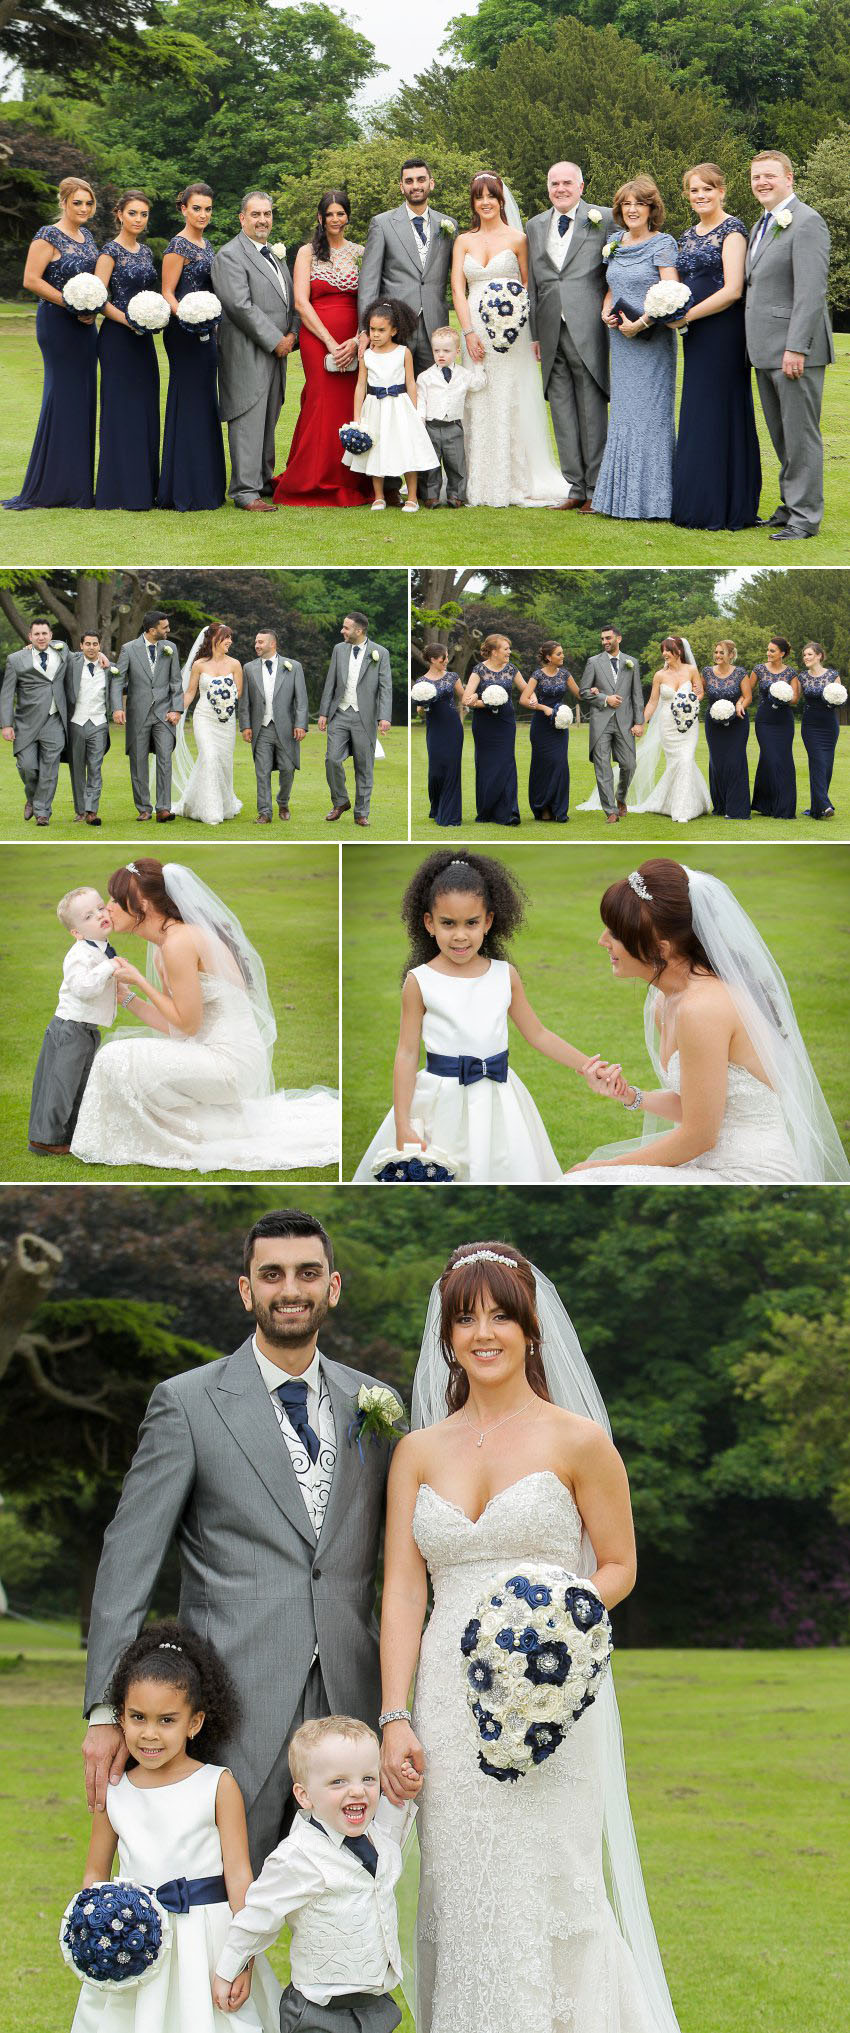 11 Wedding at Selsdon Estate, South Croydon